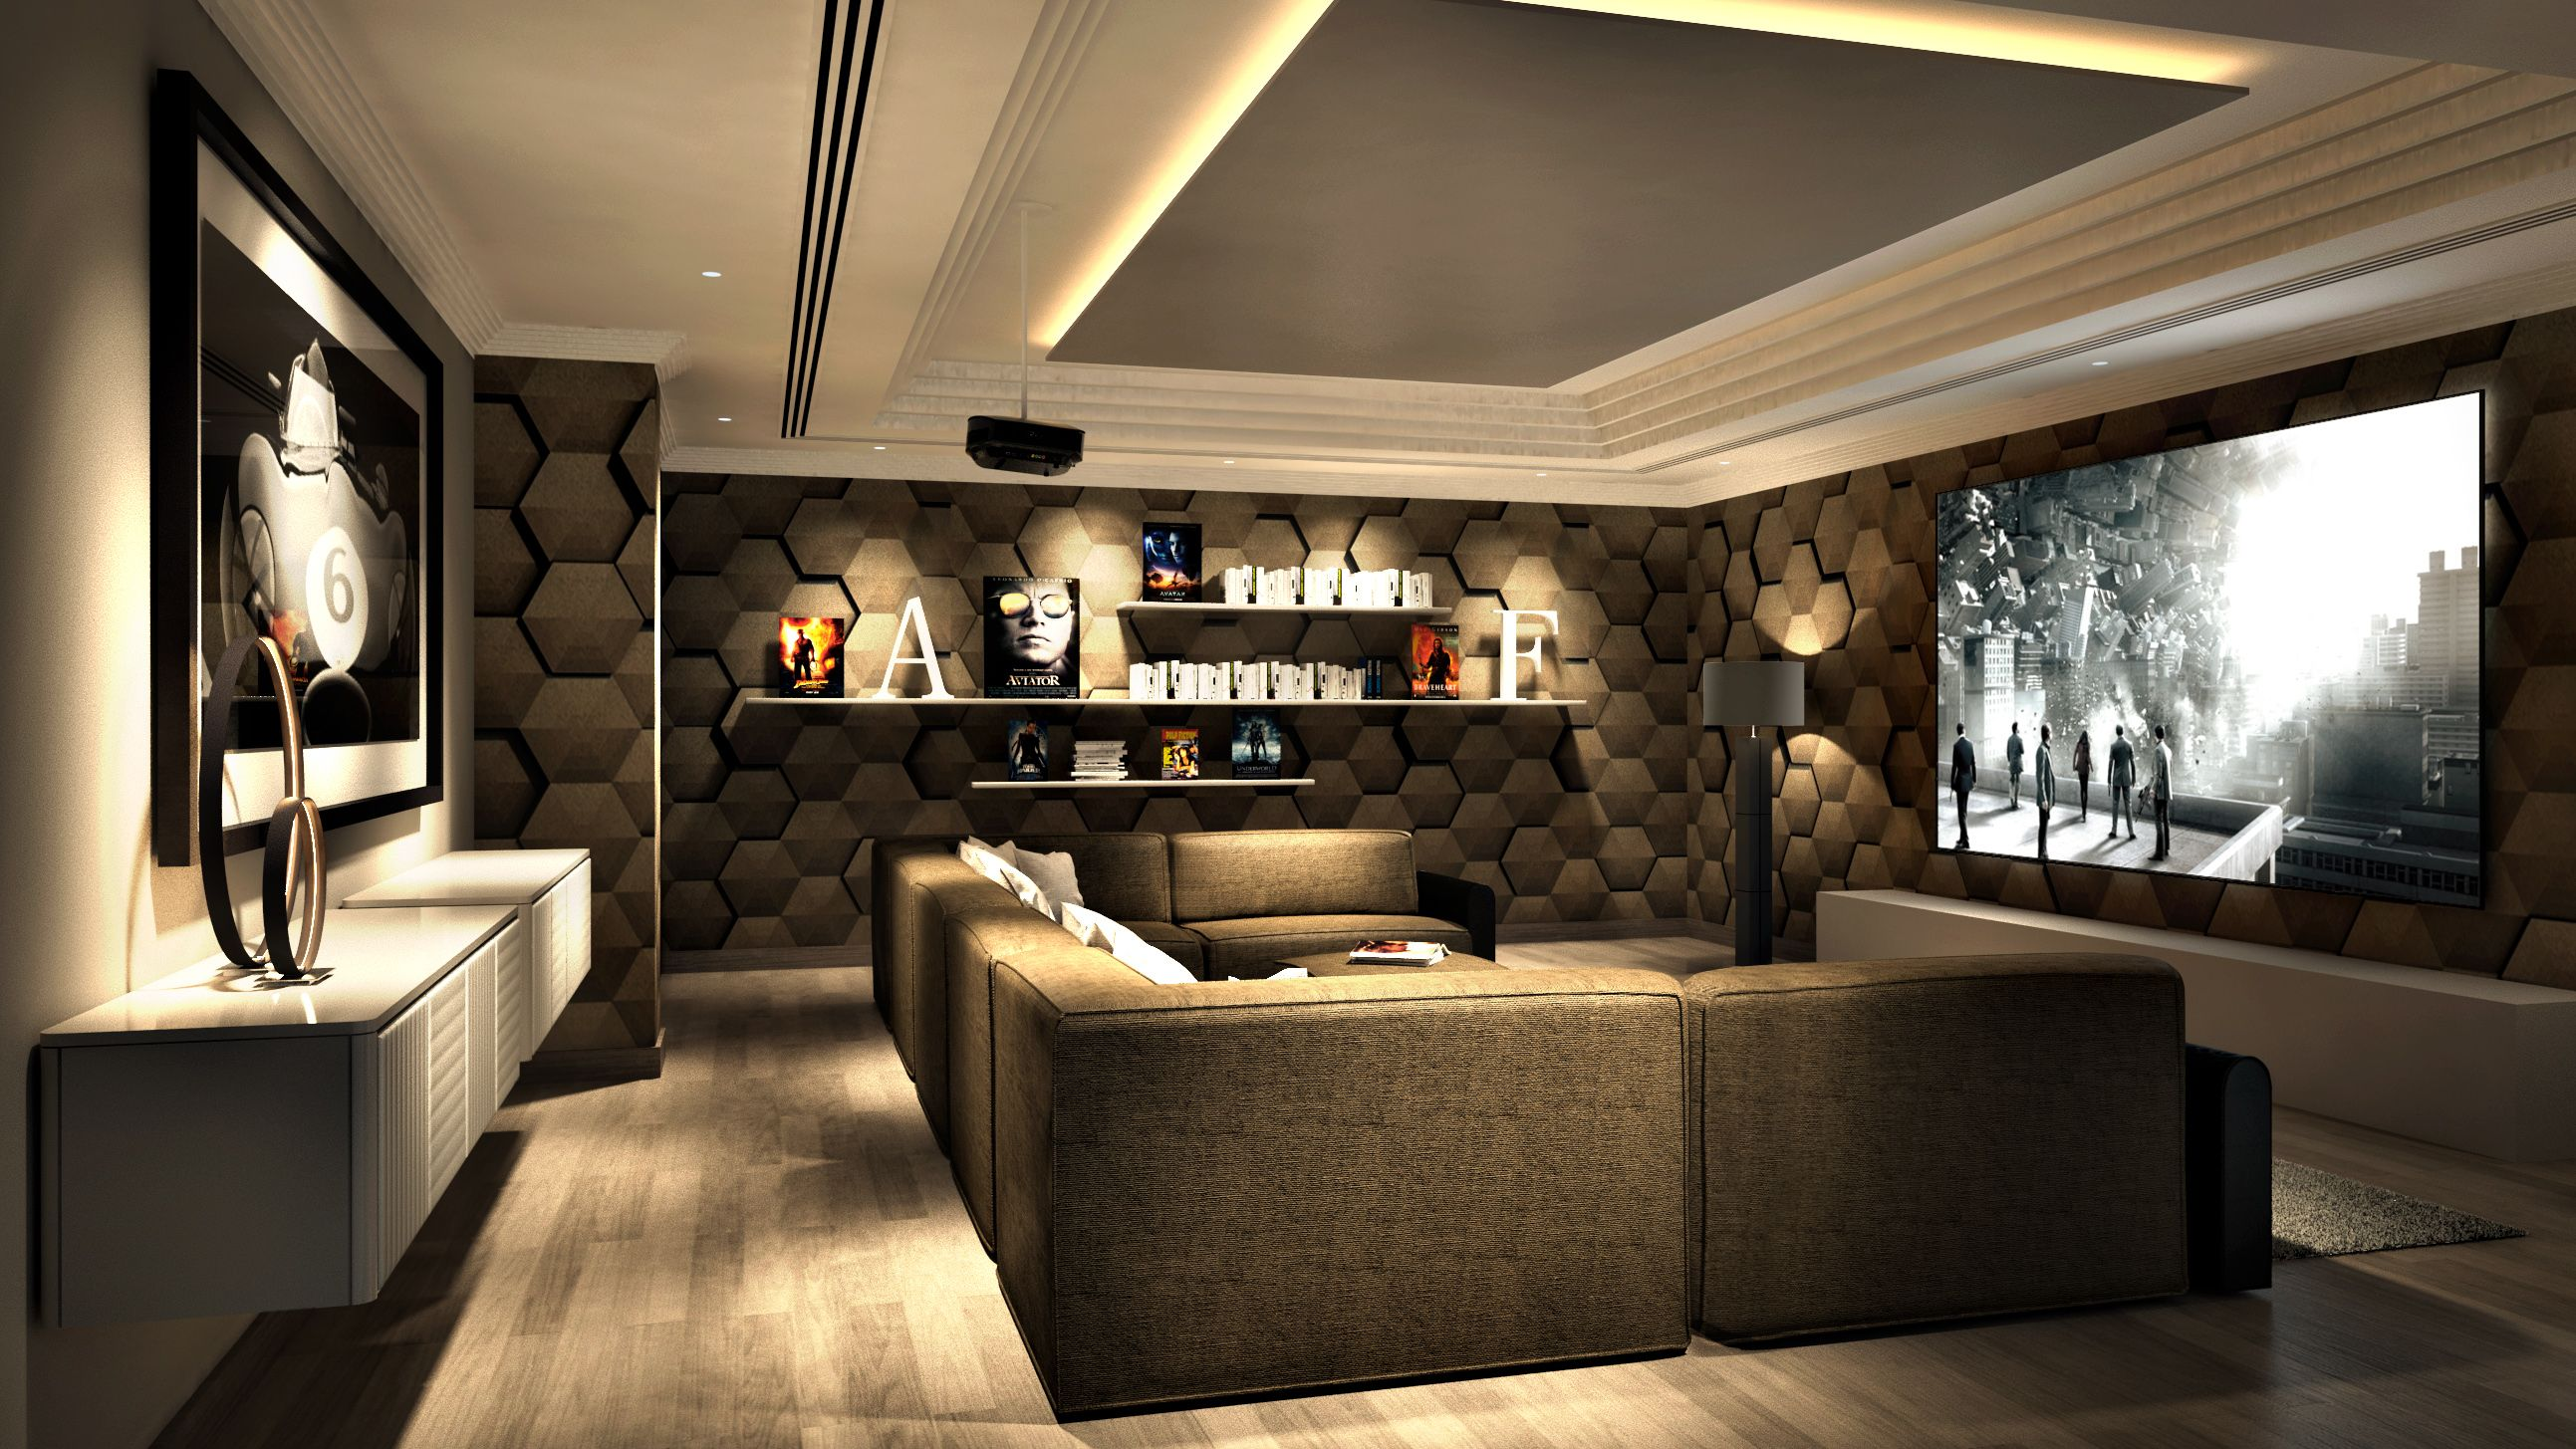 Home Theatre Decor Ideas Part - 36: Cool Home Cinema Room Ideas